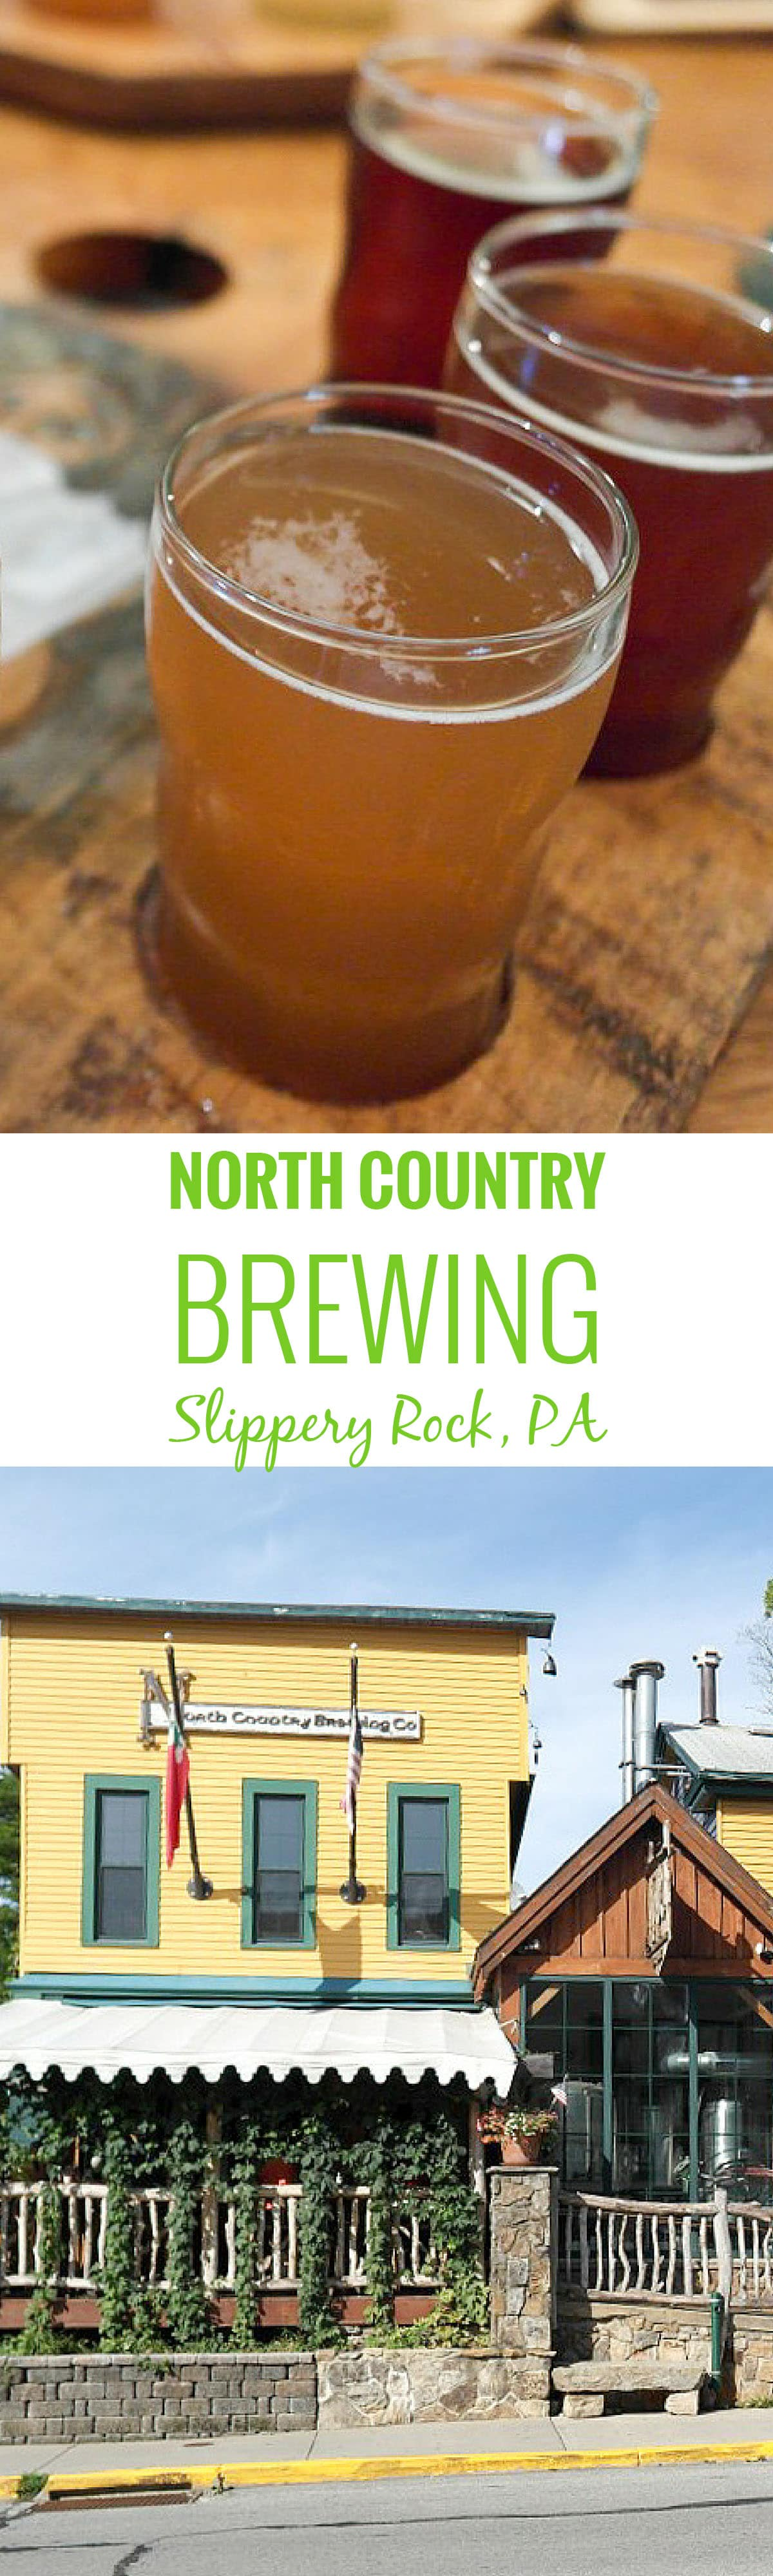 North Country Brewing in Slippery Rock, Pennsylvania. North Country Brewery is in a historic building from the 1800s that serves locally sourced food with a wide selection of beers.